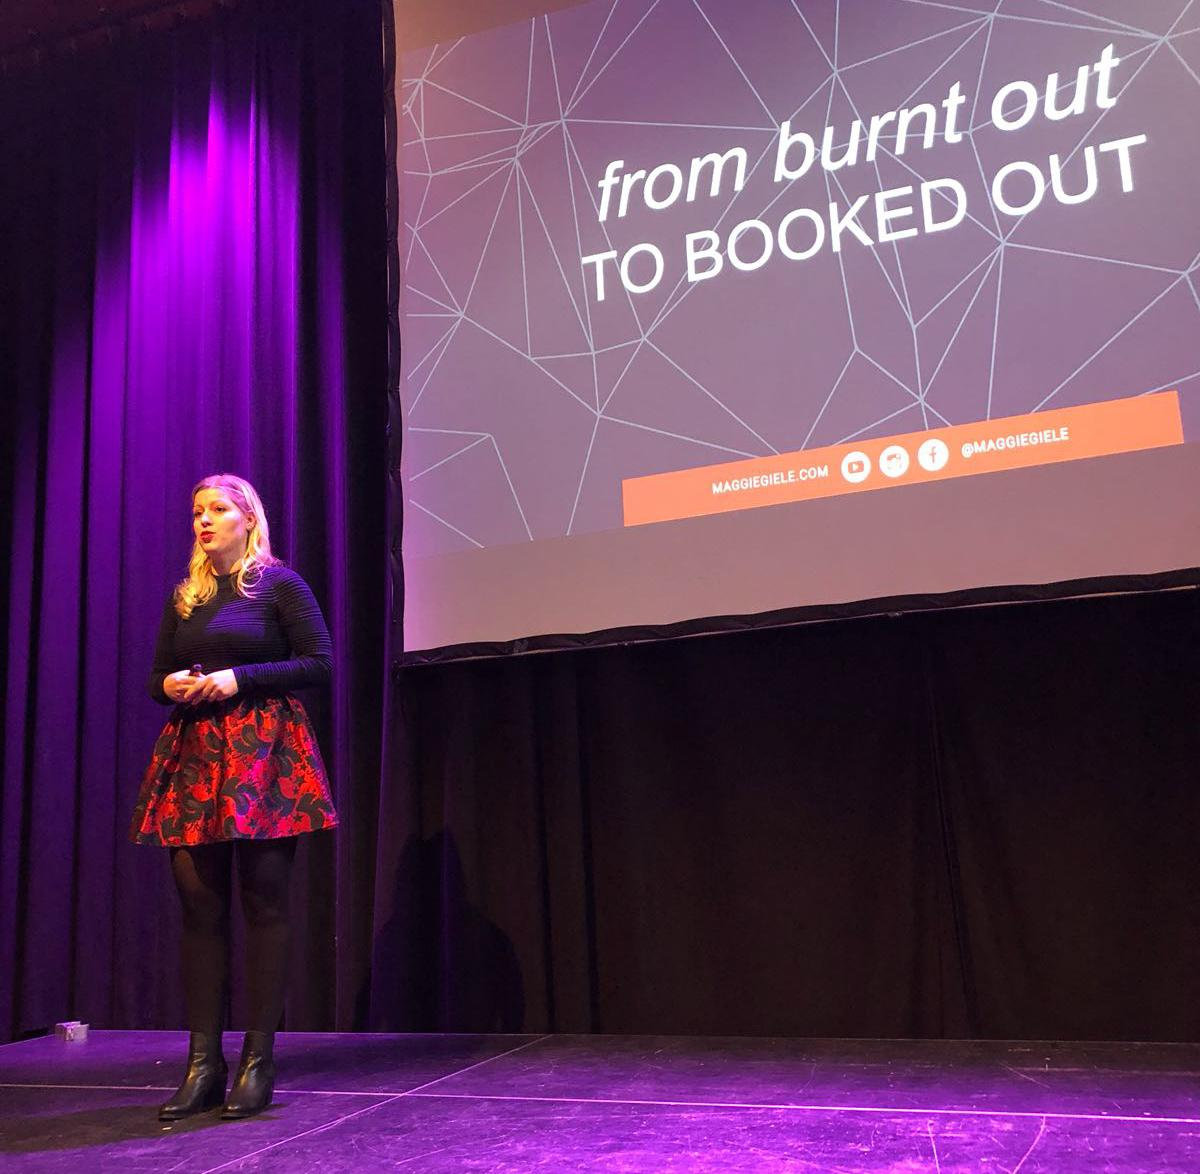 Maggie Giele - From Burnt Out to Booked Out